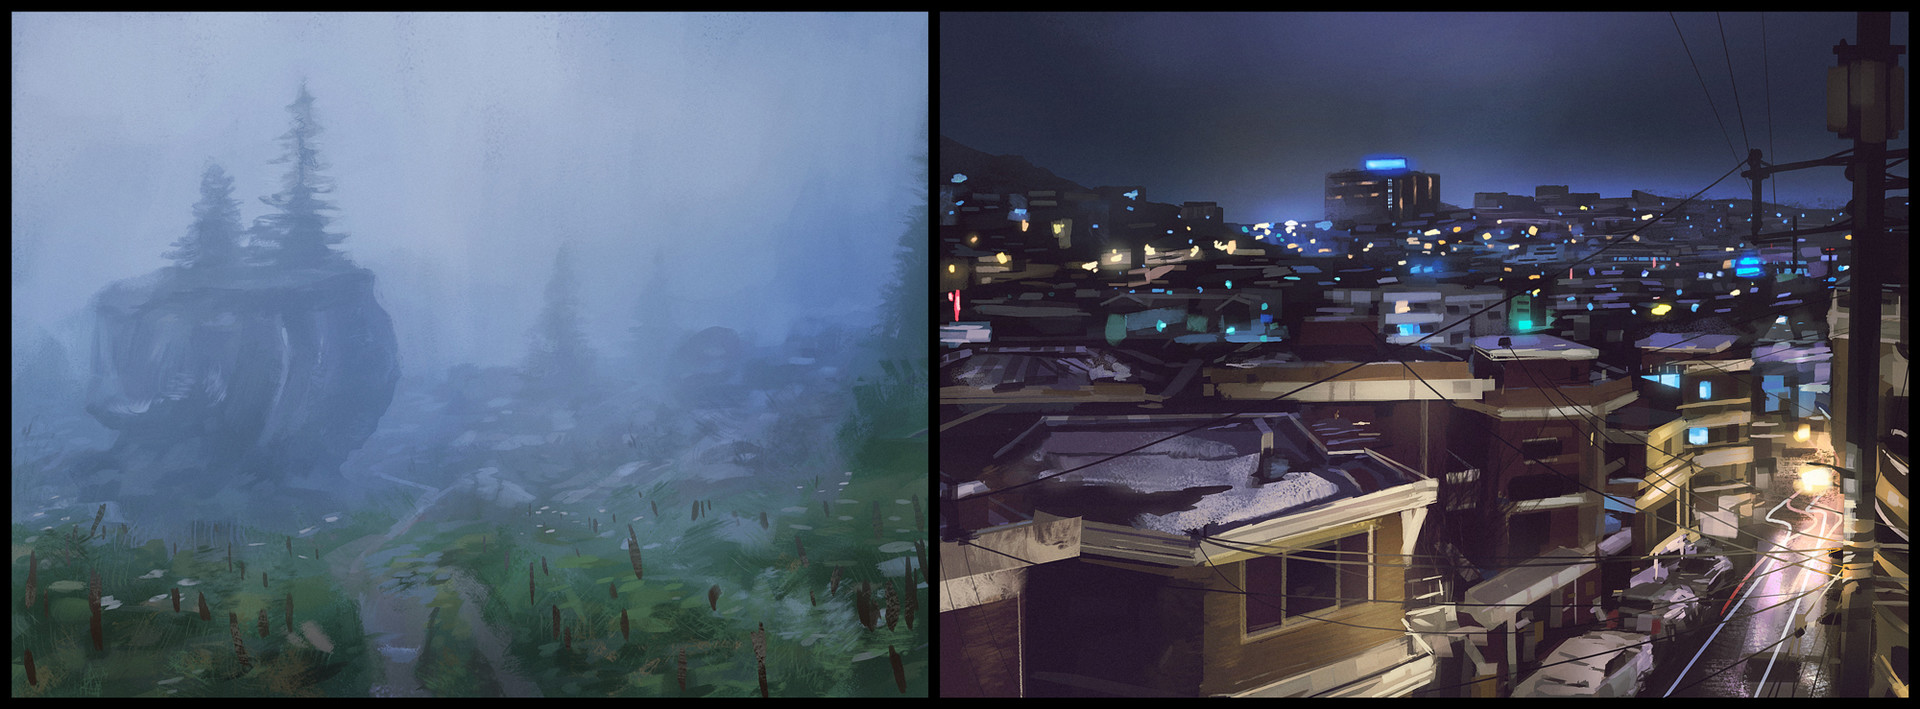 Izaak moody env study 4 5 hours